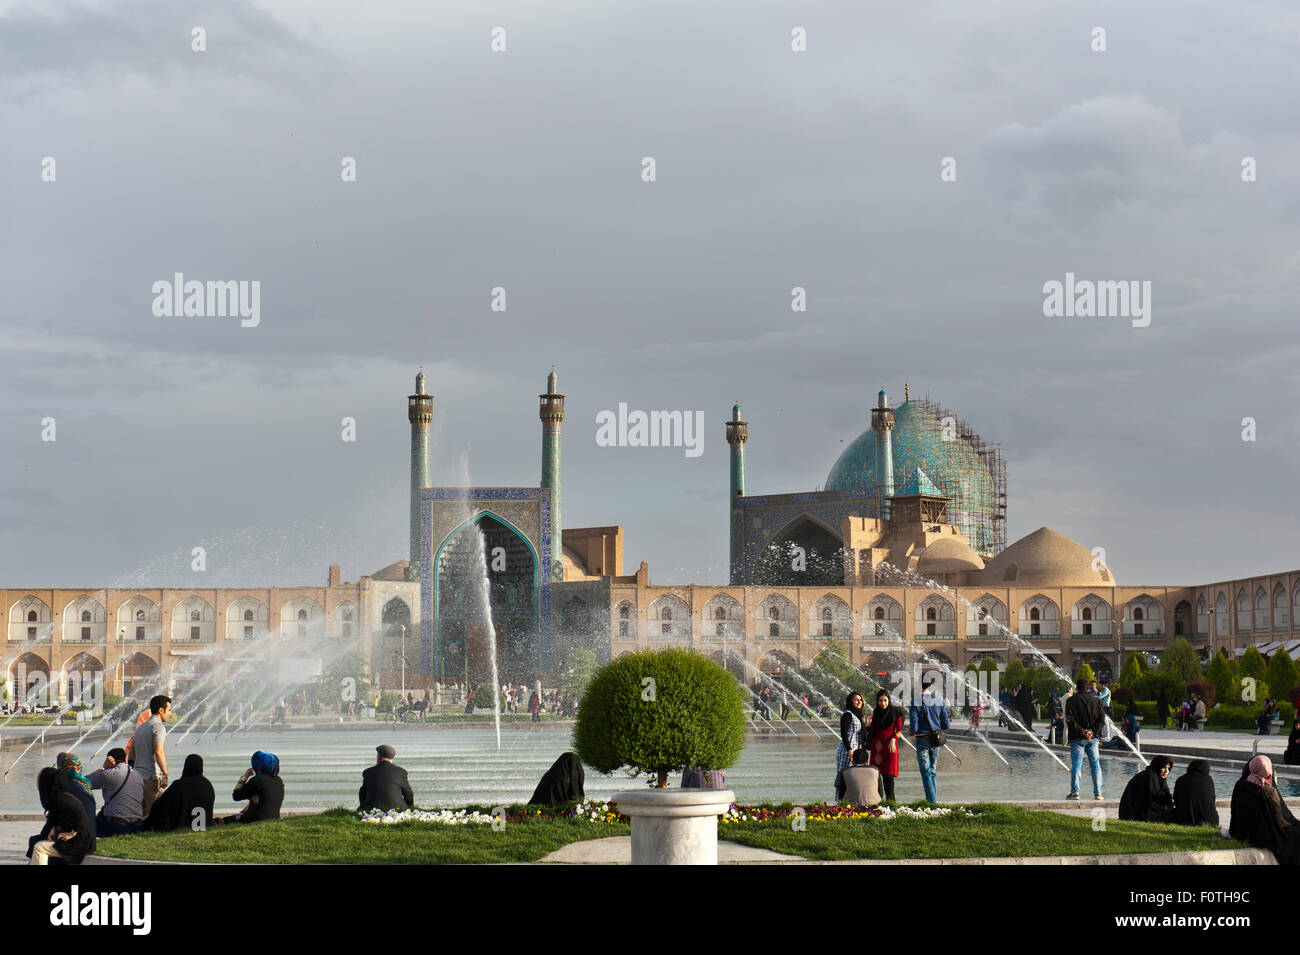 Iranians on the Maidan Square, also Naqsh-e Jahan Square, with a fountain, King Mosque with arches, Imam Mosque - Stock Image